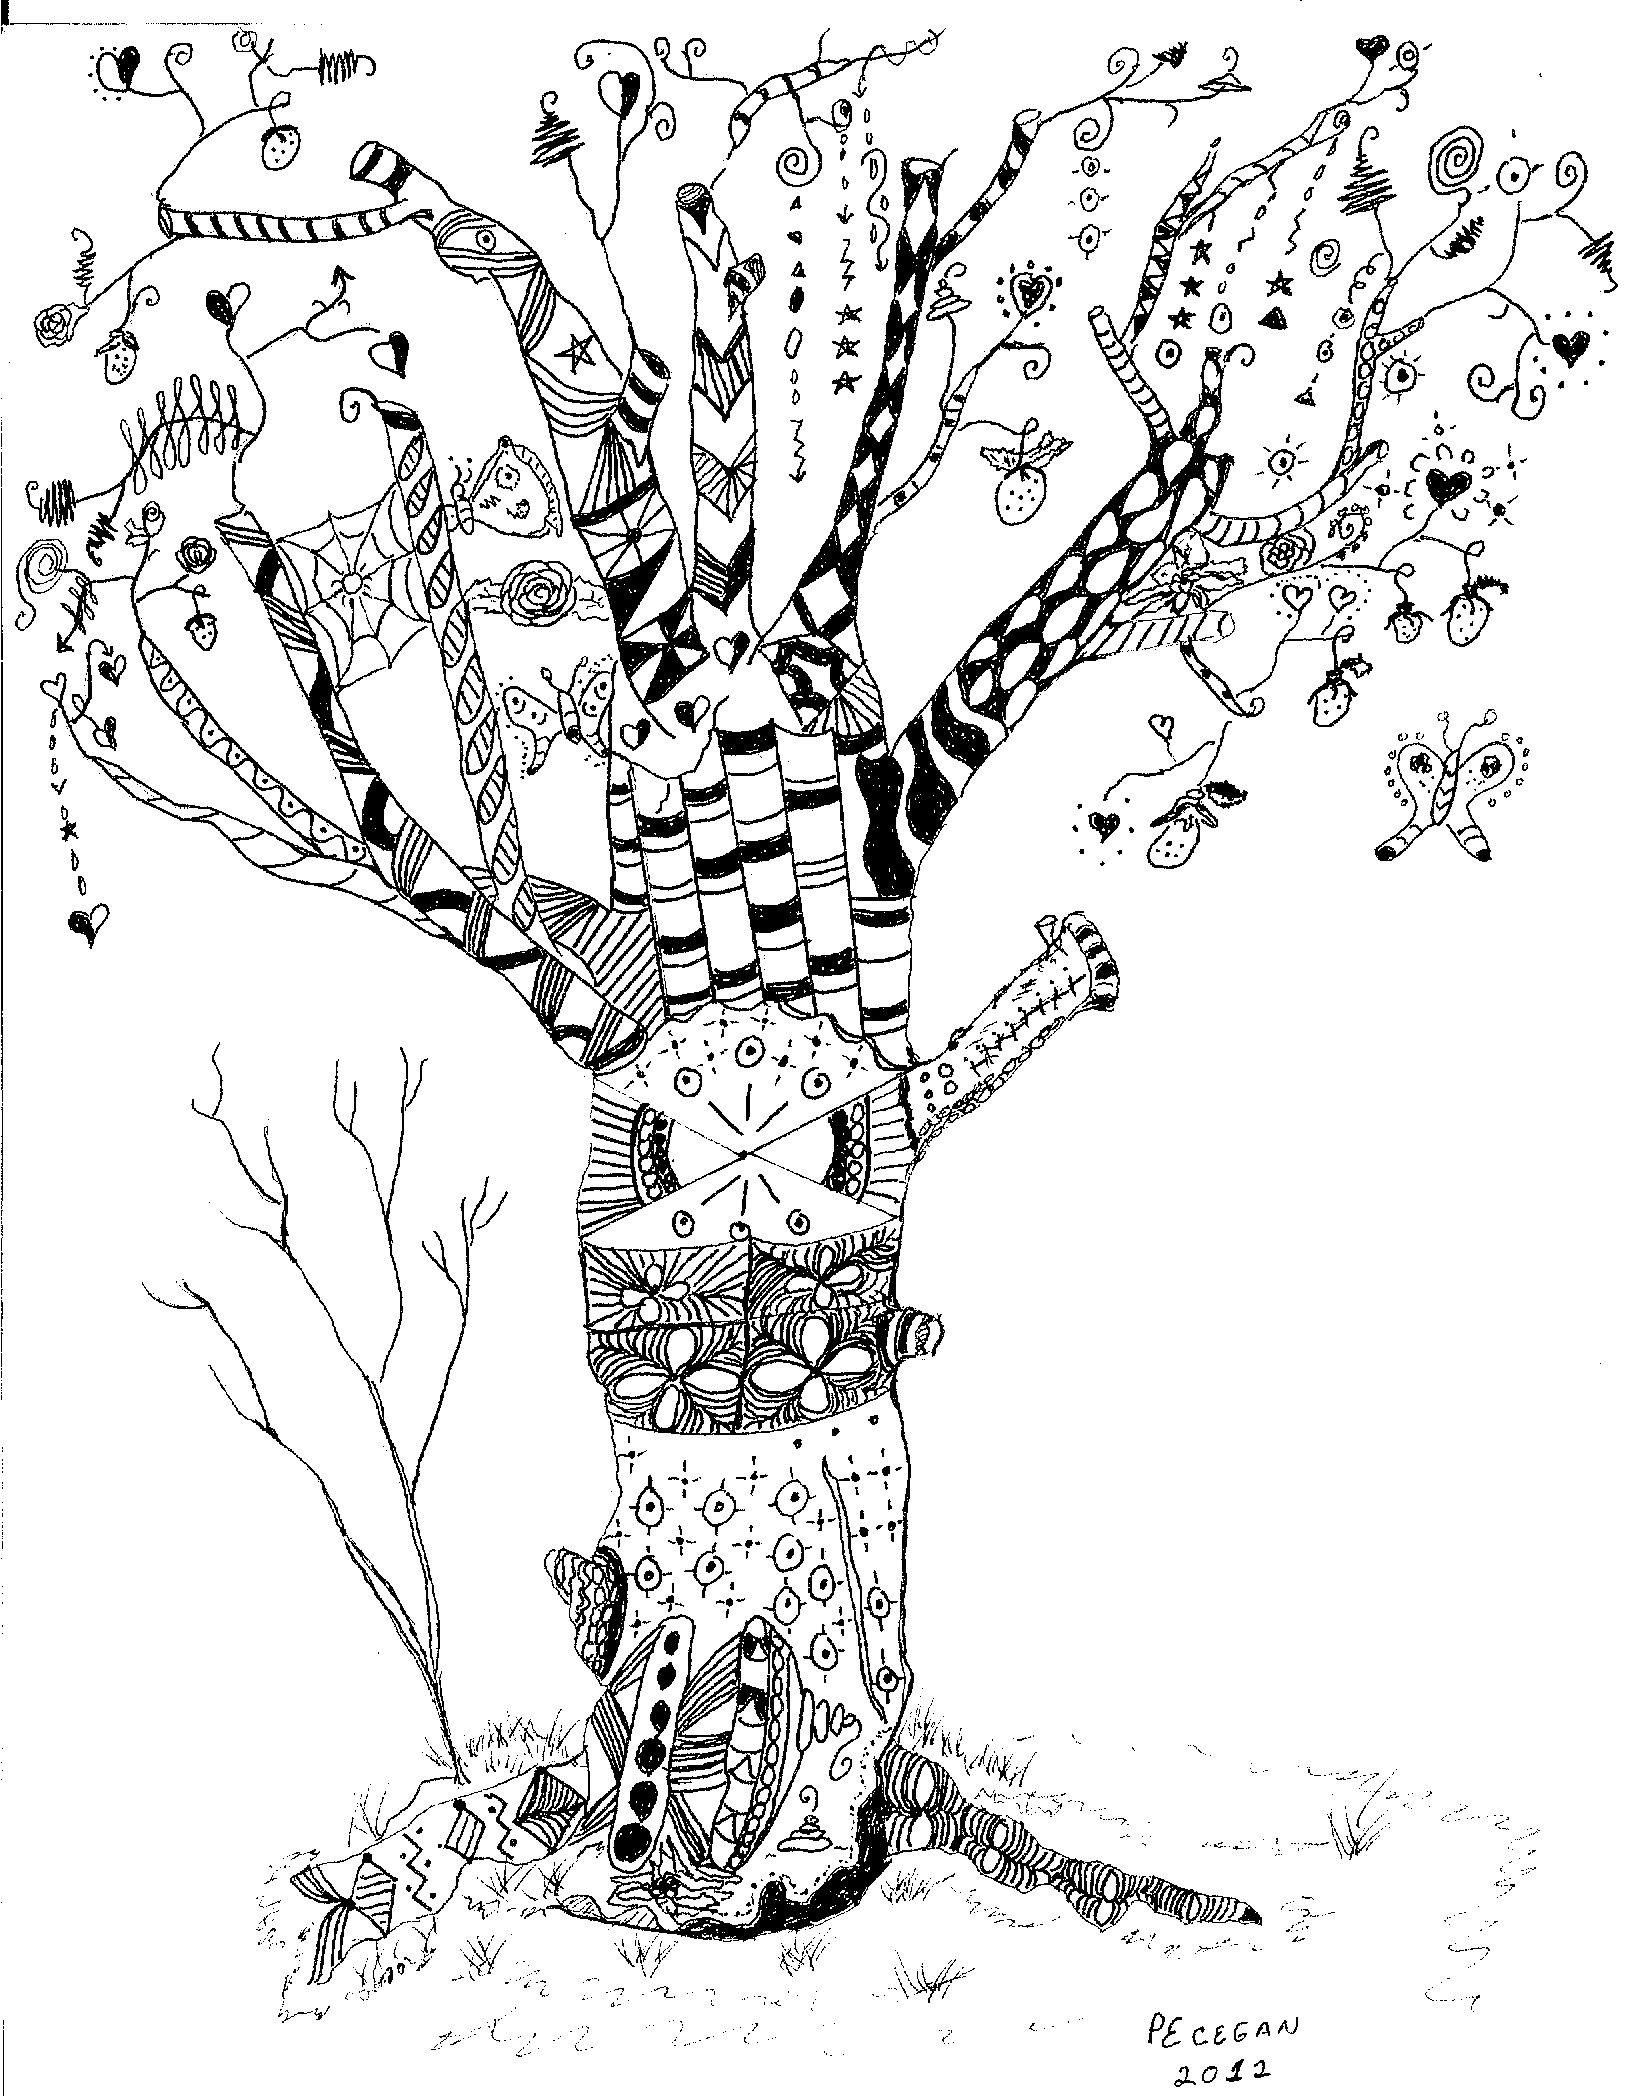 japaese tree coloring pages - photo#36